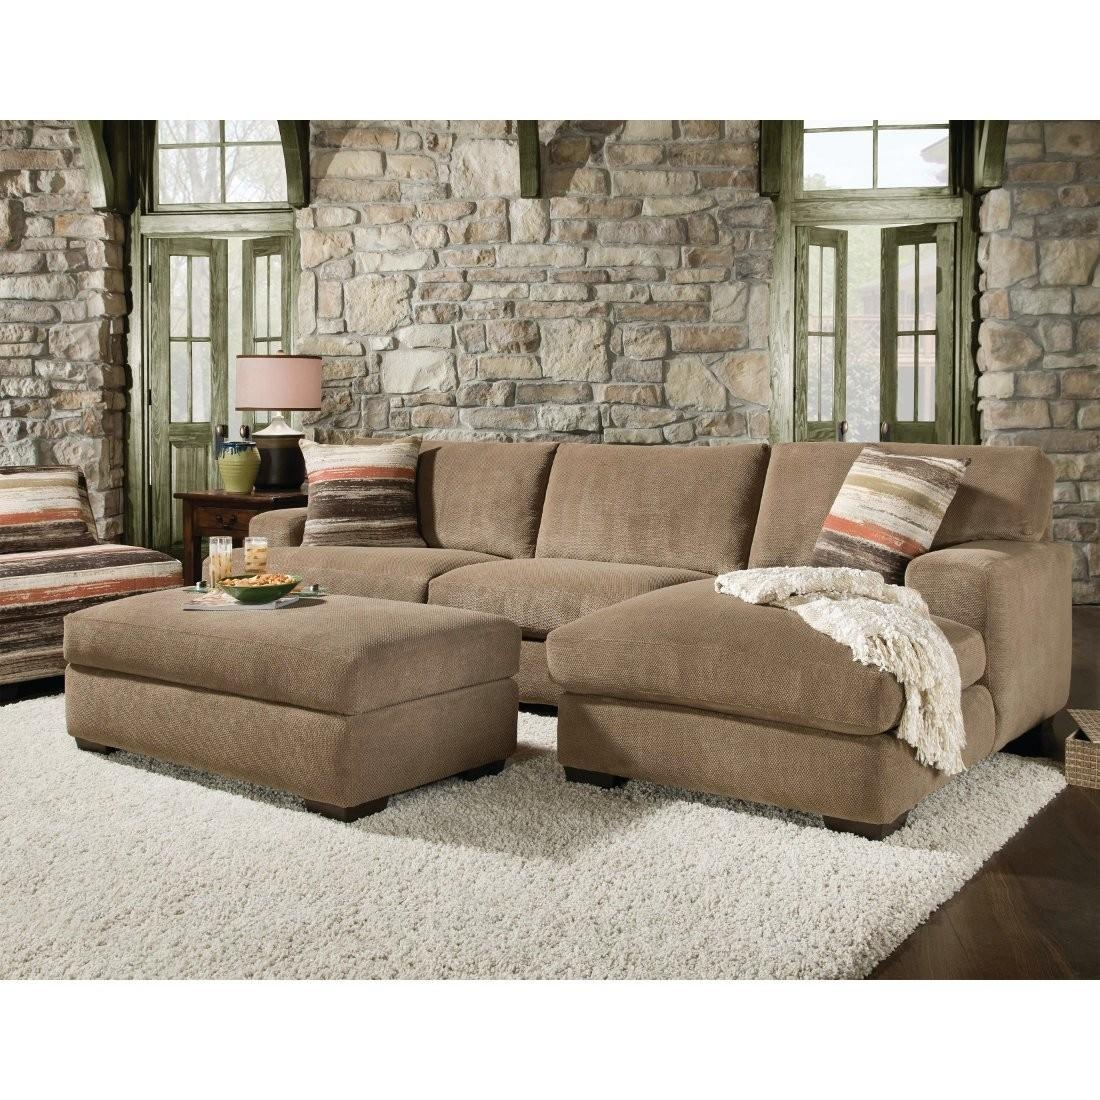 2 Piece Sectional Sofa With Chaise Cover | Tehranmix Decoration with Small 2 Piece Sectional